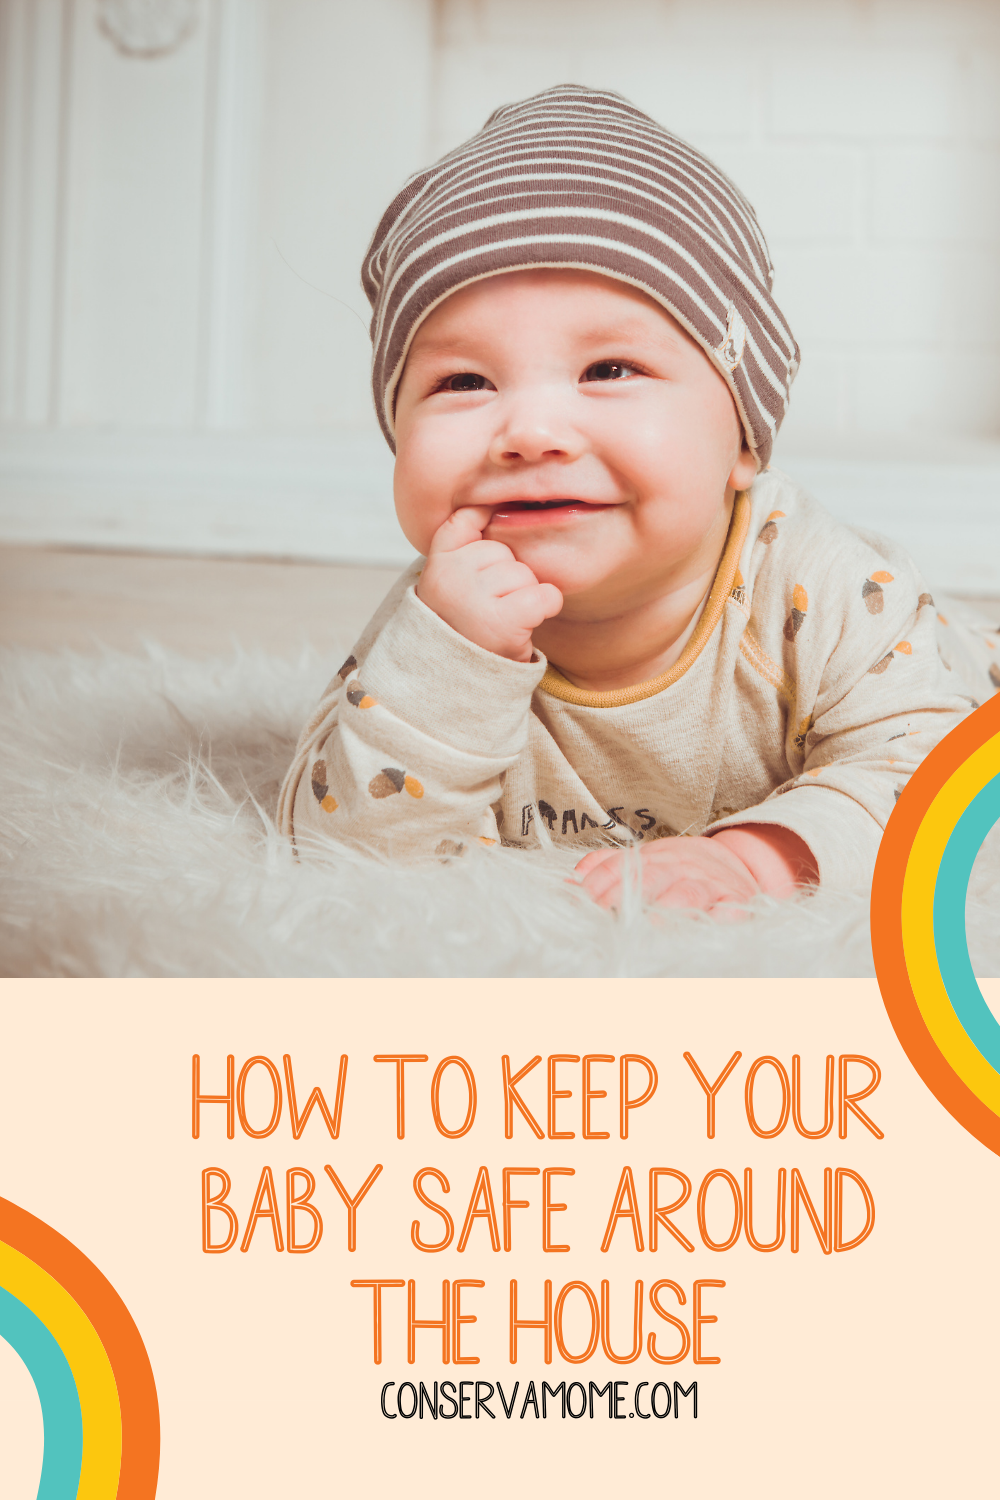 How to keep your baby safe around the house